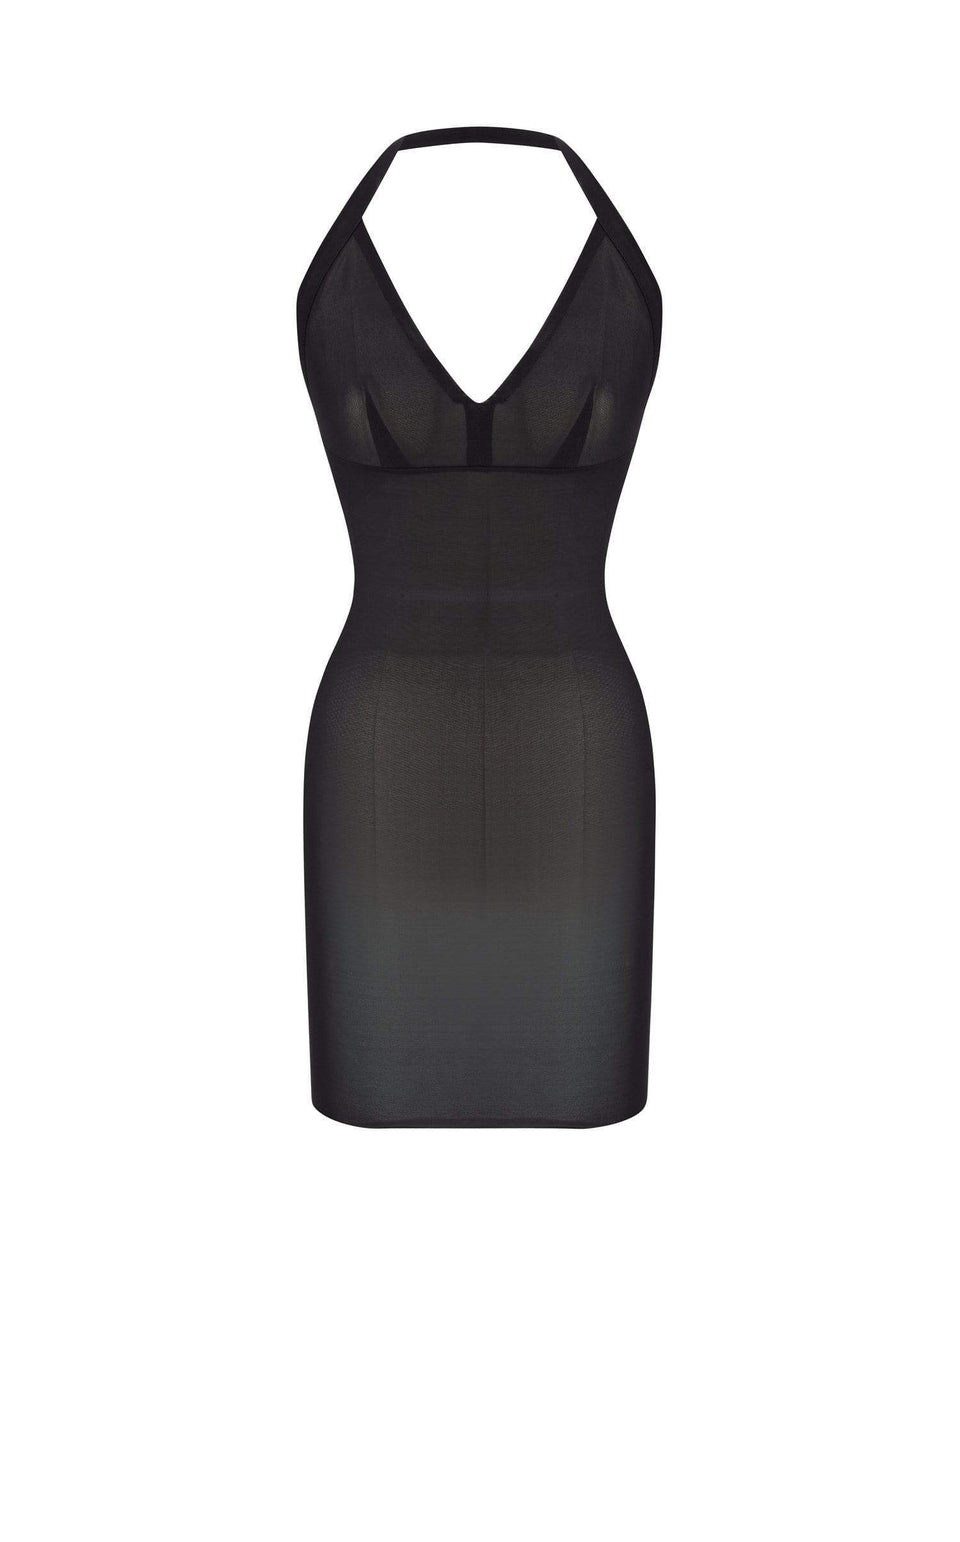 Powermesh Halter Mini Dress In Black from Roland Mouret